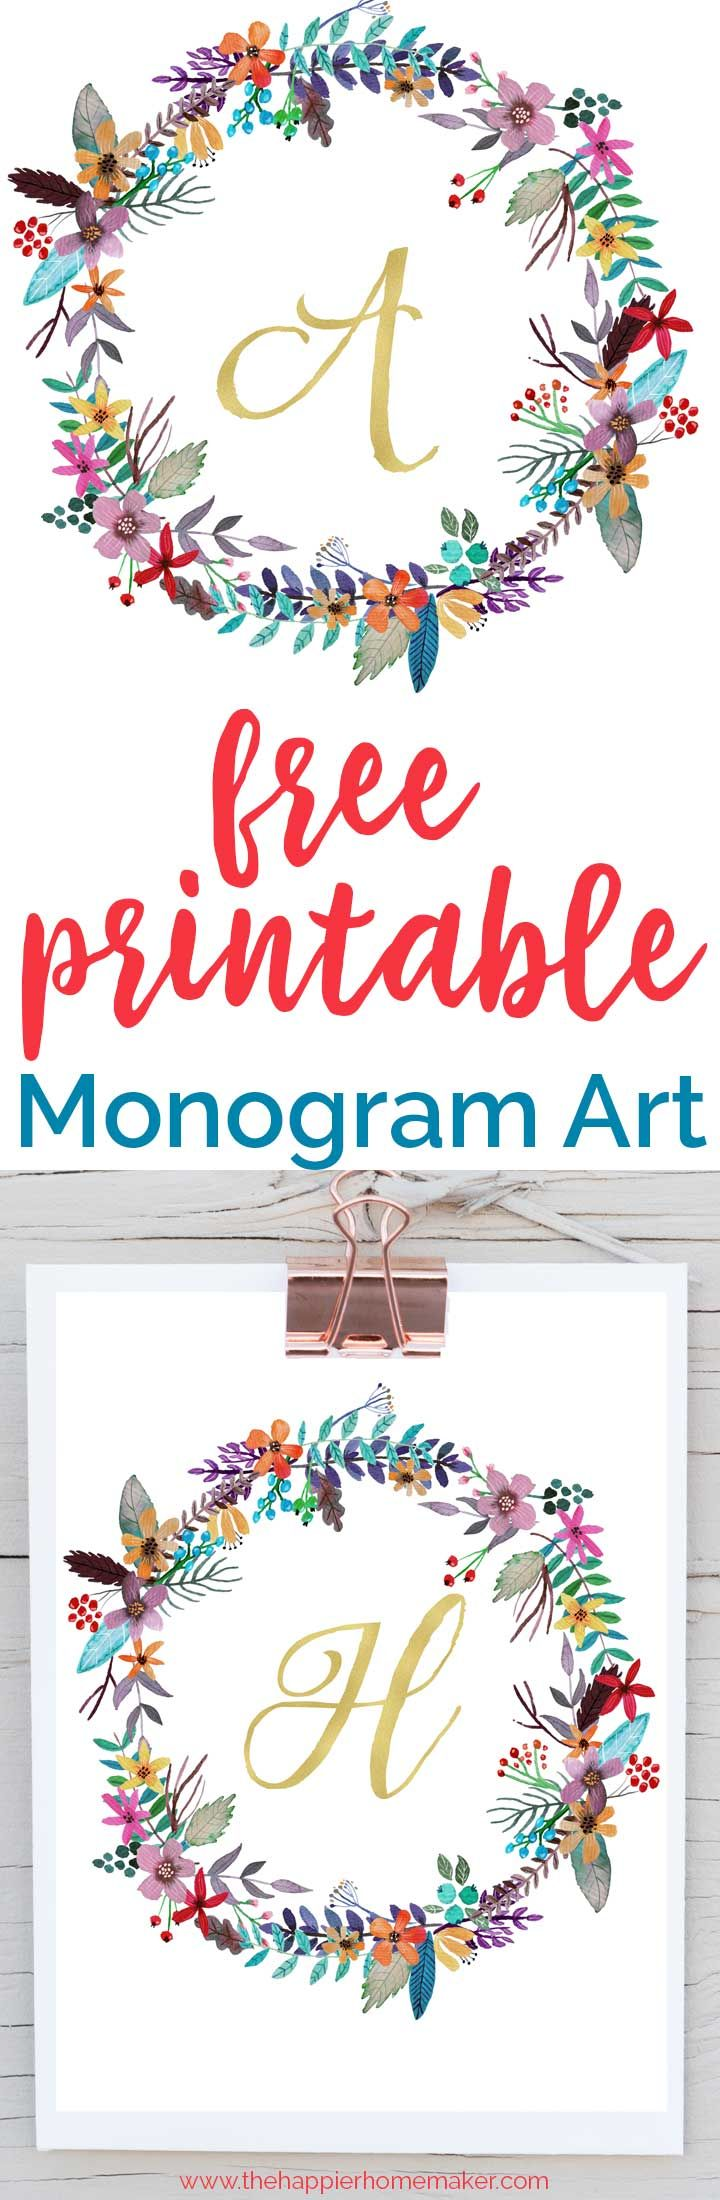 graphic relating to Free Monogram Printable identified as Do-it-yourself Crafts : Attractive free of charge printable monogram artwork for your